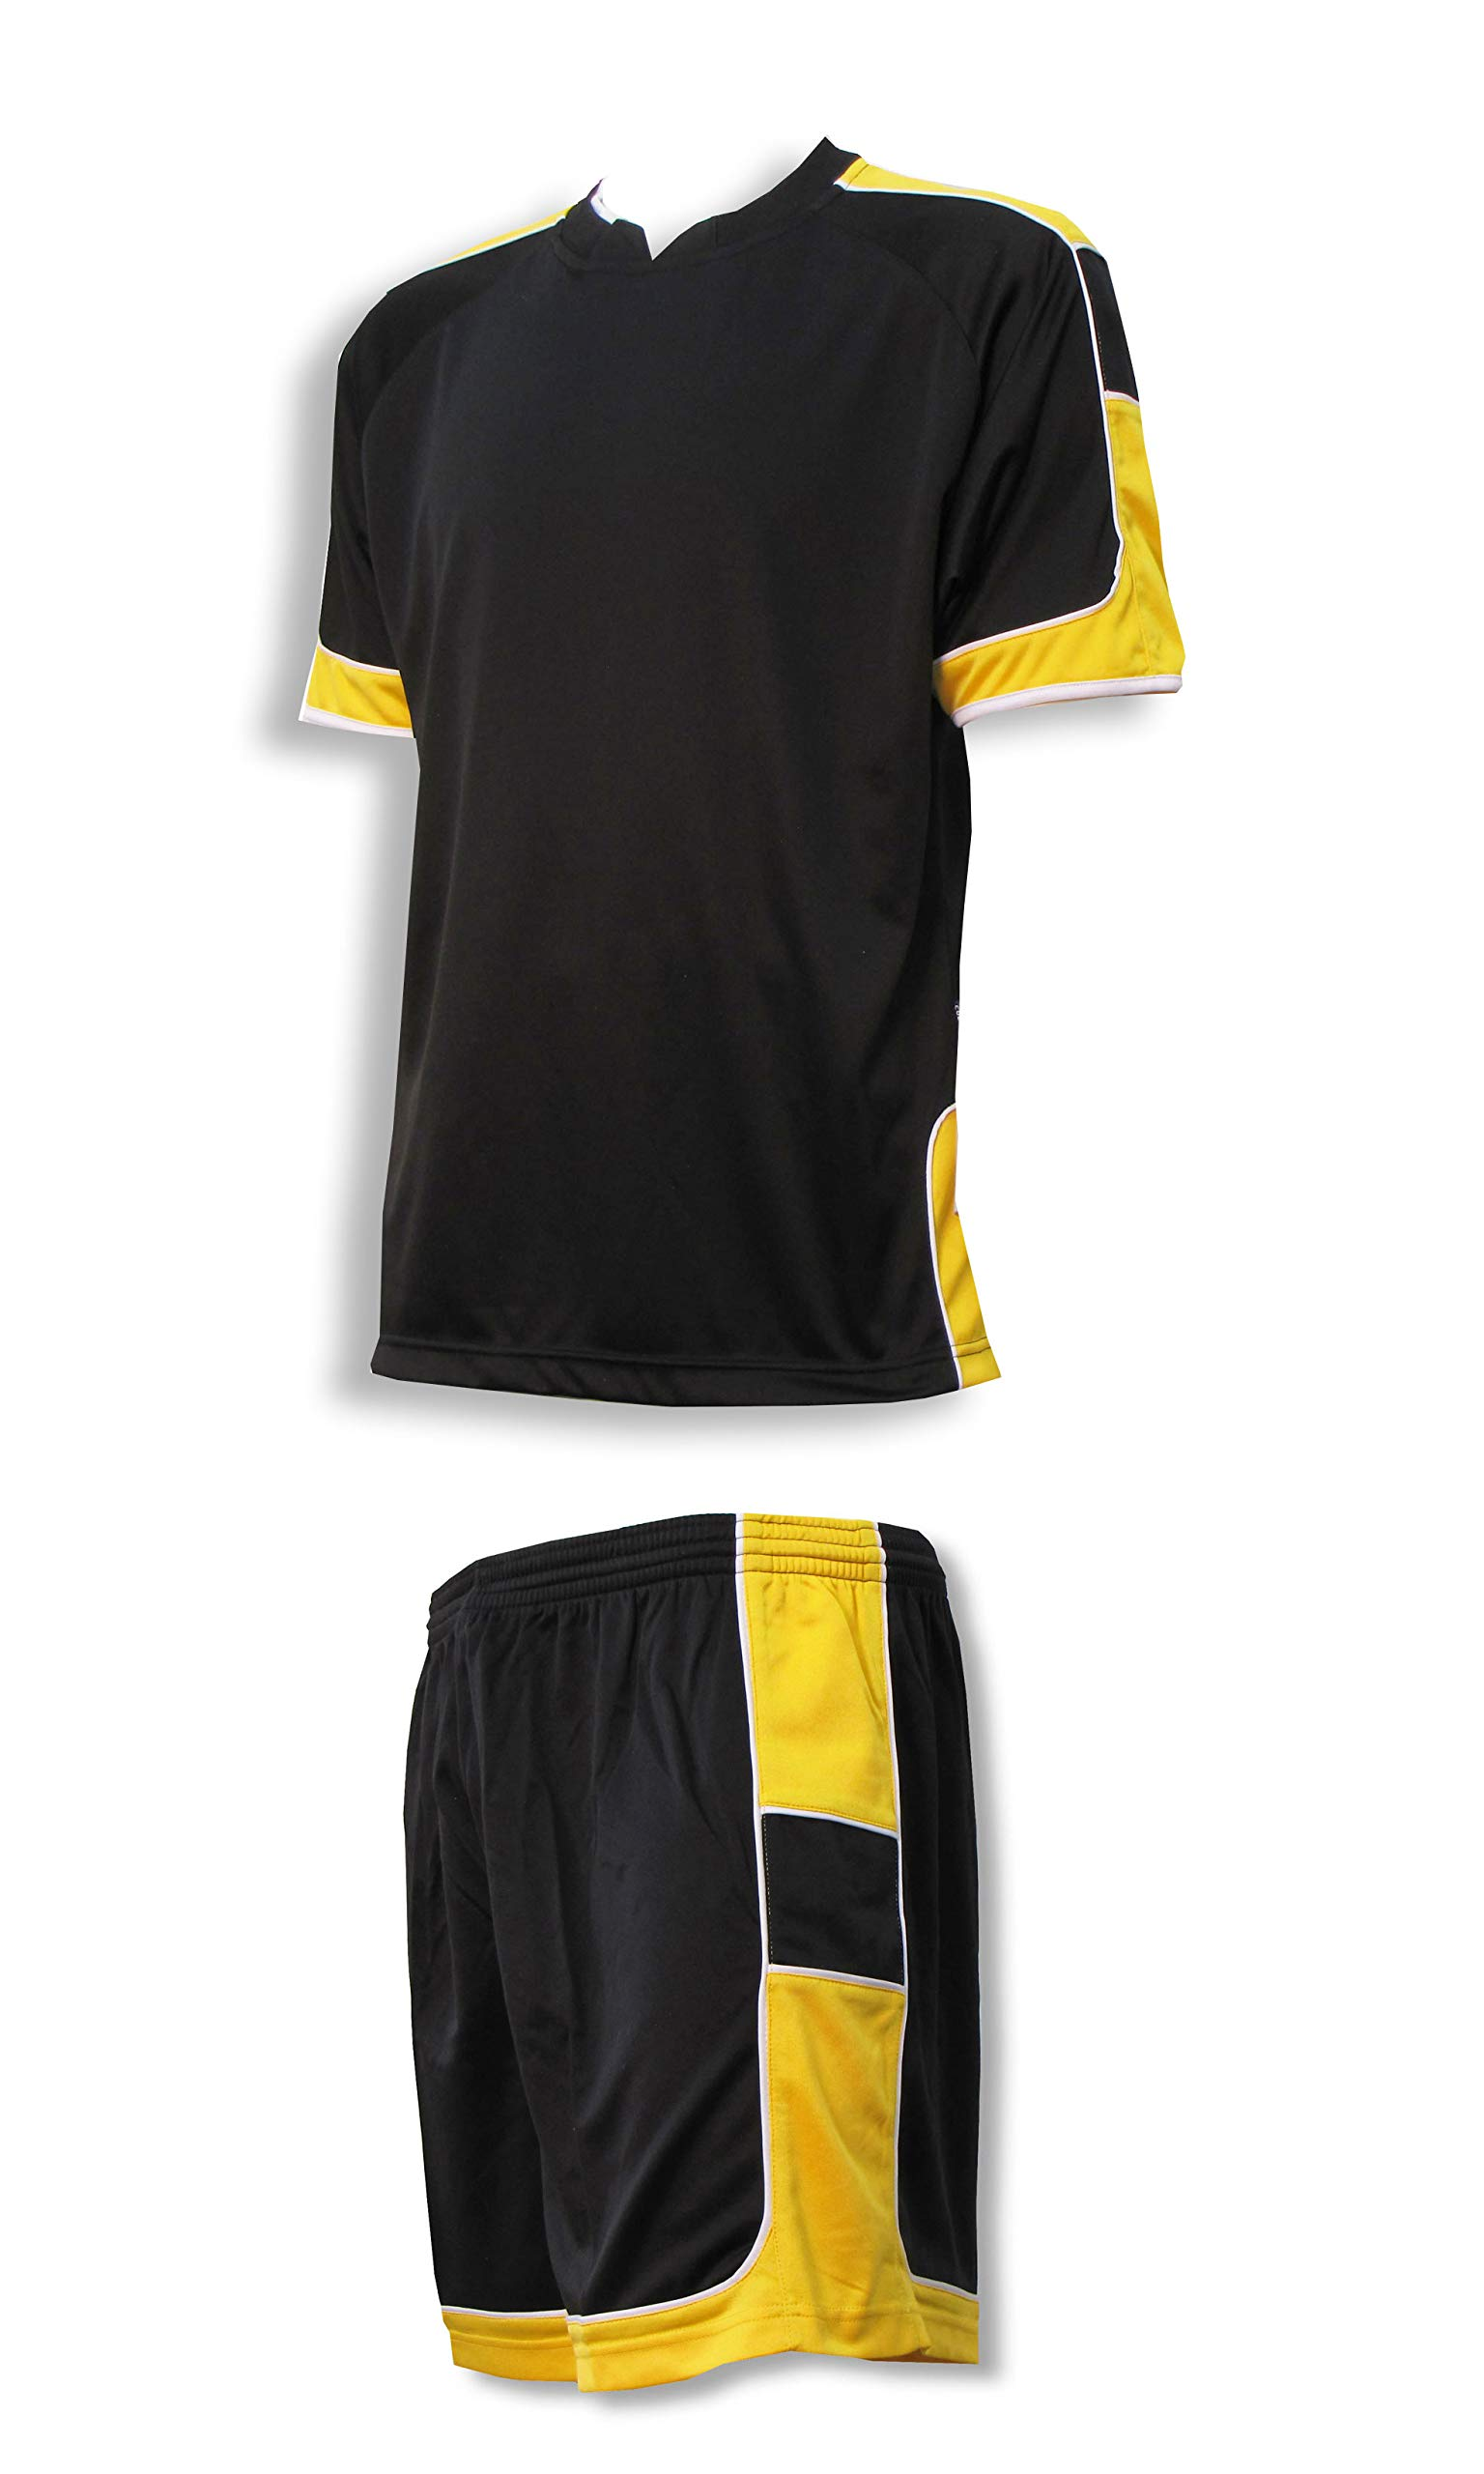 Galaxy soccer goalie jersey-short set customized with your name and number on back